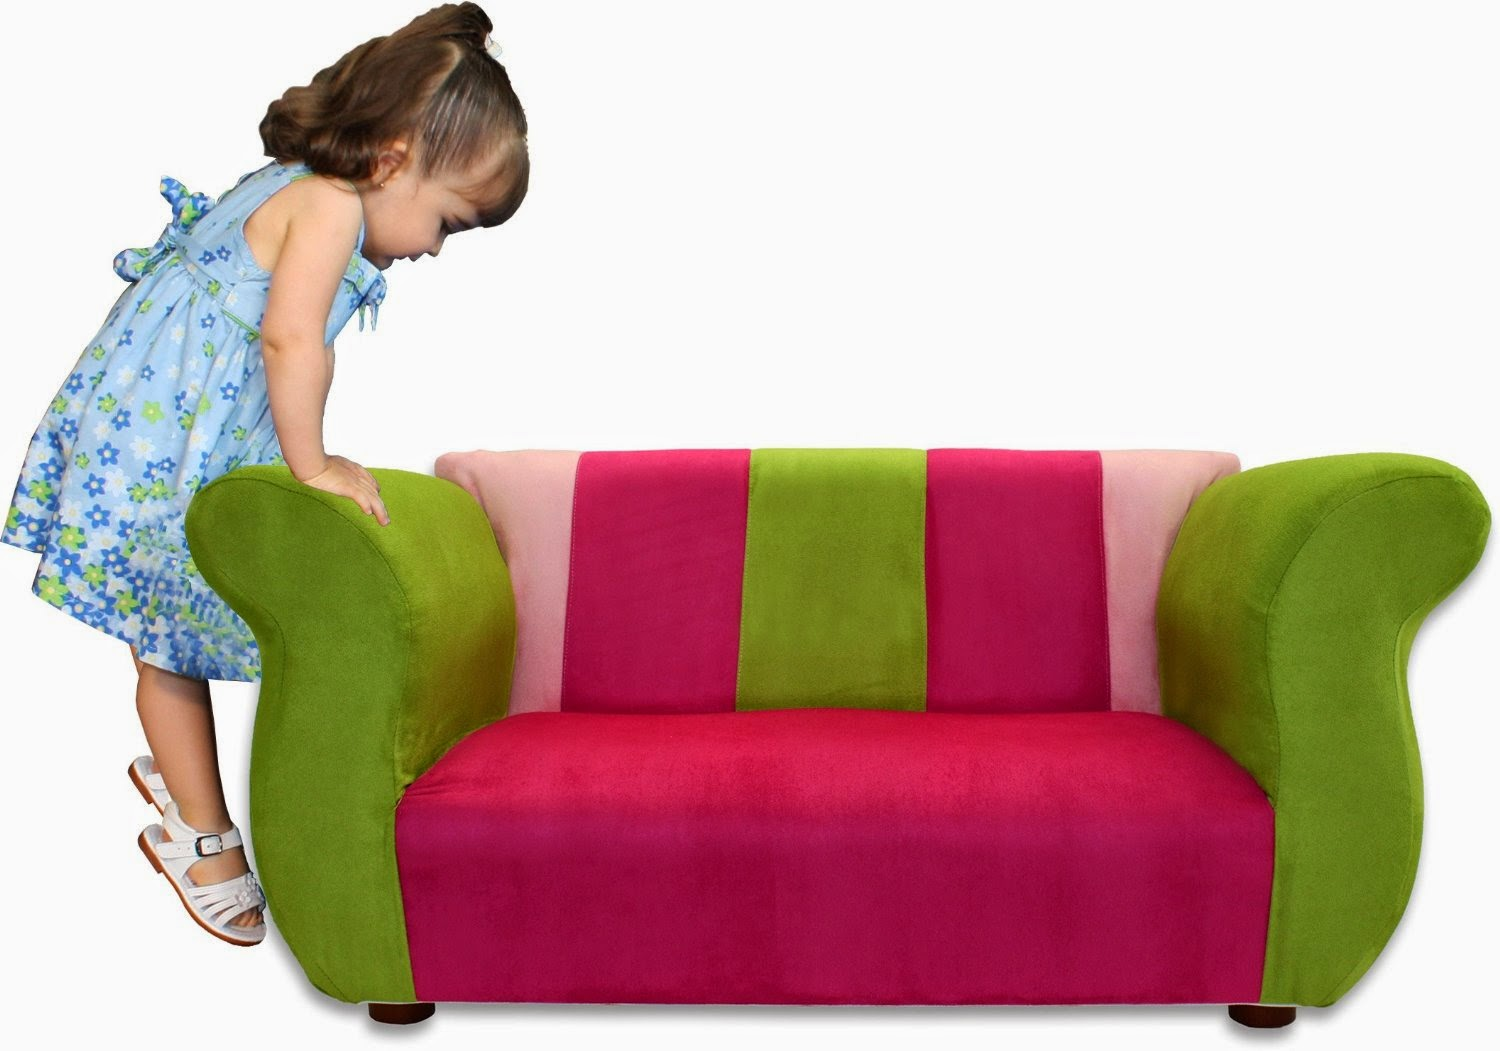 kids couch: mini couch for kids